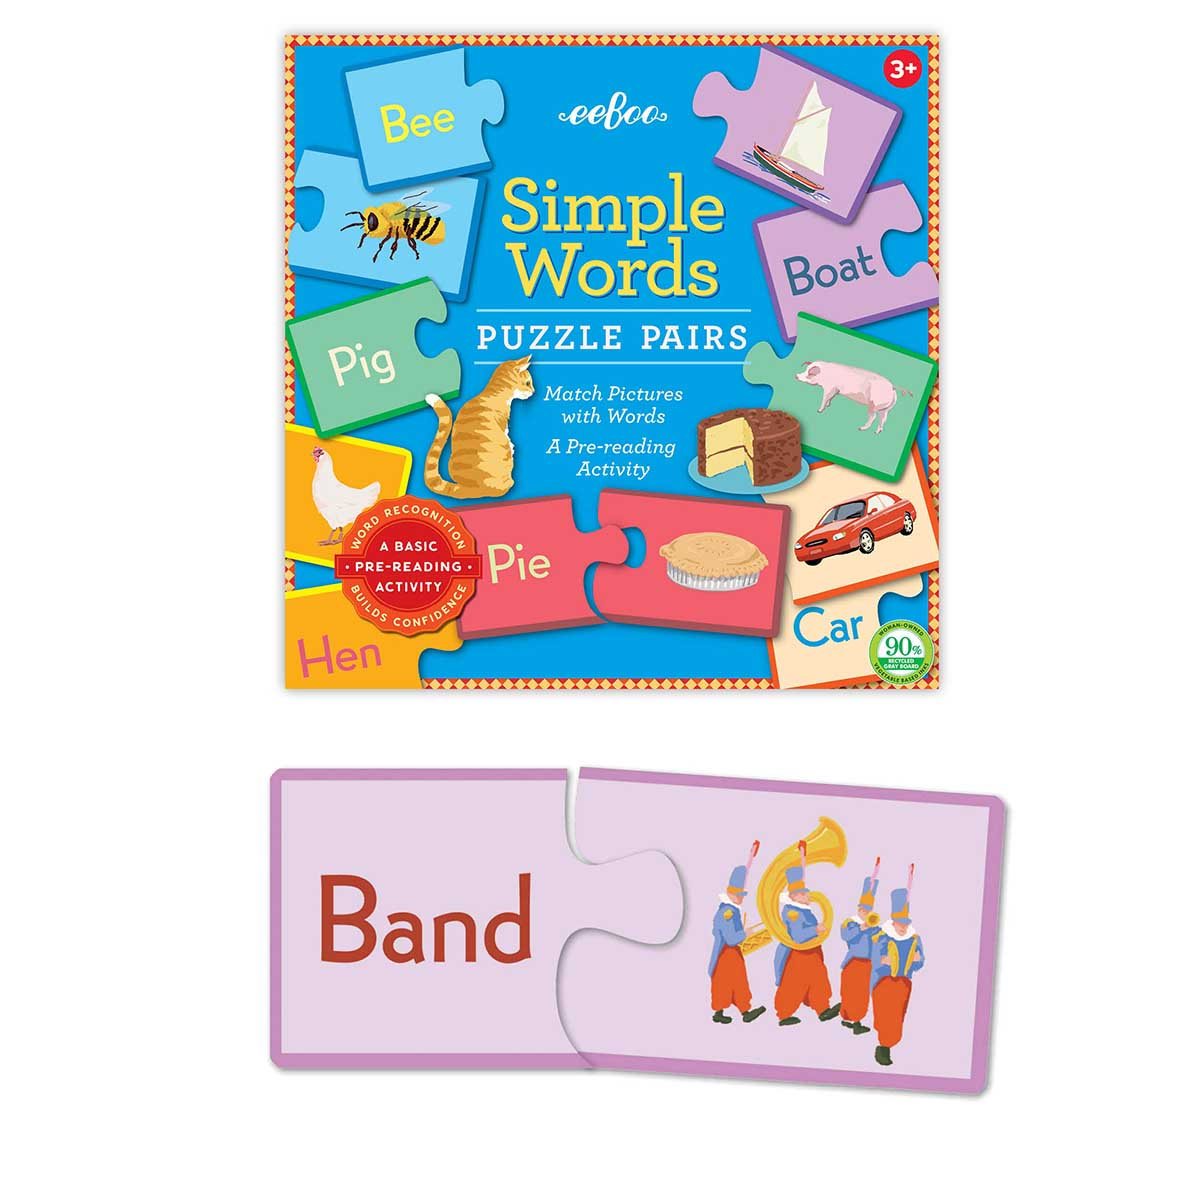 Simple Word Educational Children's Puzzles